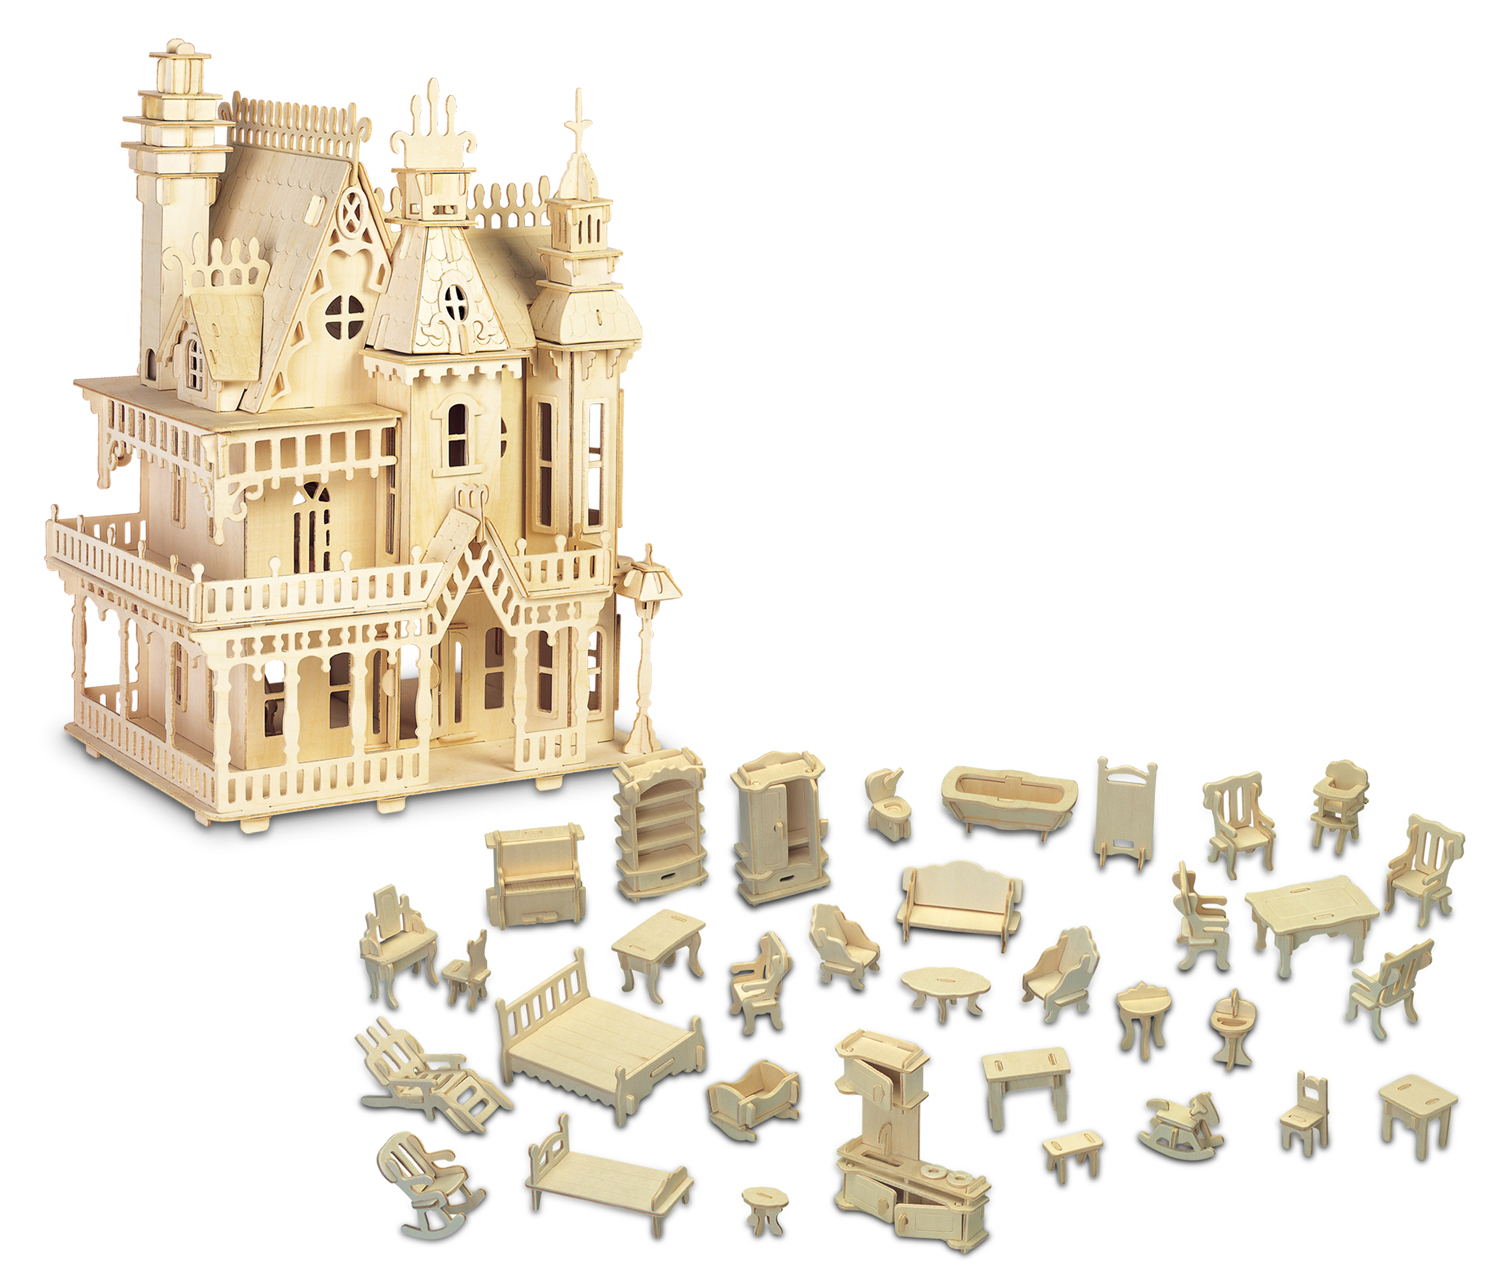 Click here to buy Puzzled Furniture Set and Fantasy Villa Wooden 3D Puzzle Construction Kit by Puzzled Inc.